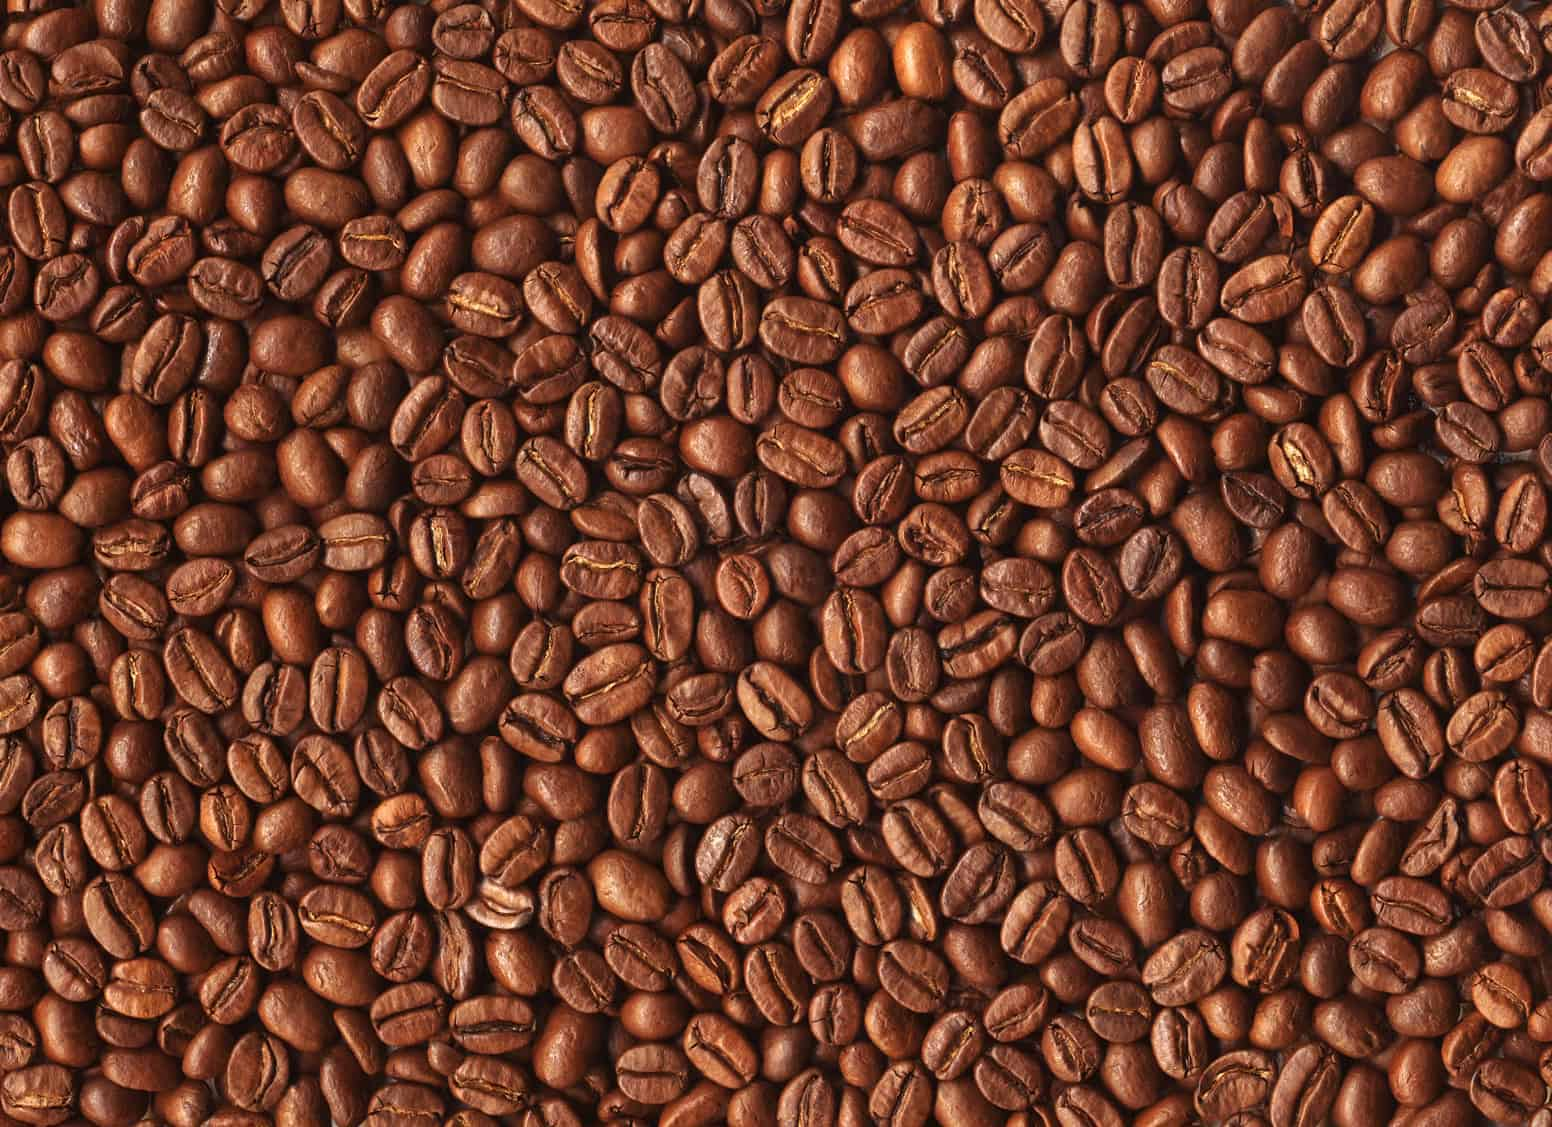 Experience The Aroma Of Freshly Ground Coffee Beans With